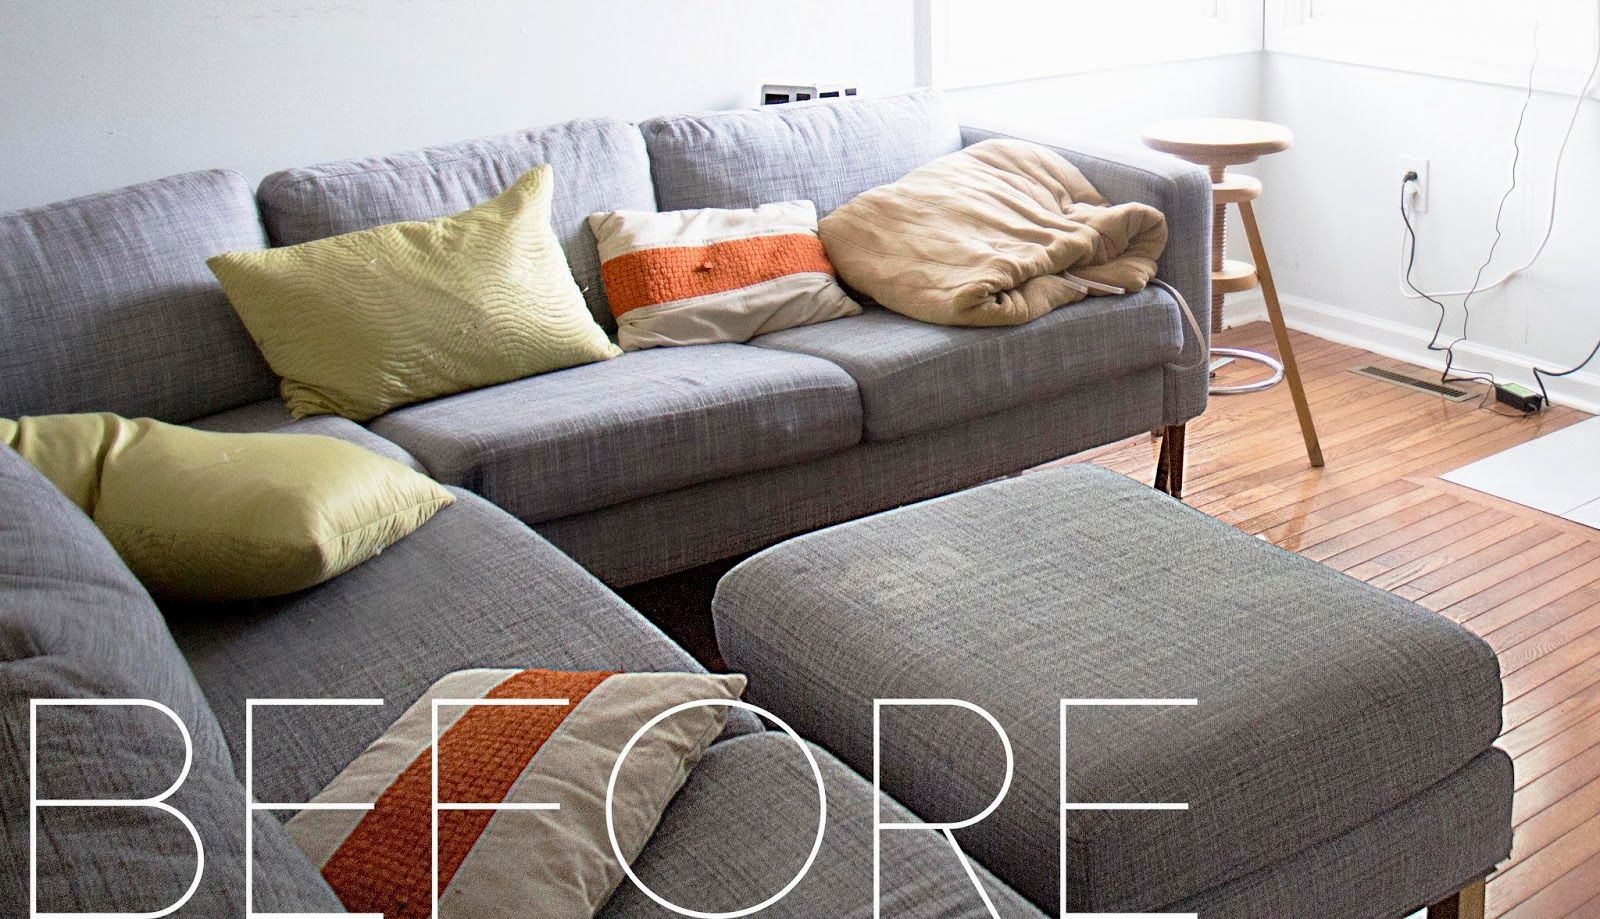 top 3 piece t cushion sofa slipcover picture-Awesome 3 Piece T Cushion sofa Slipcover Layout